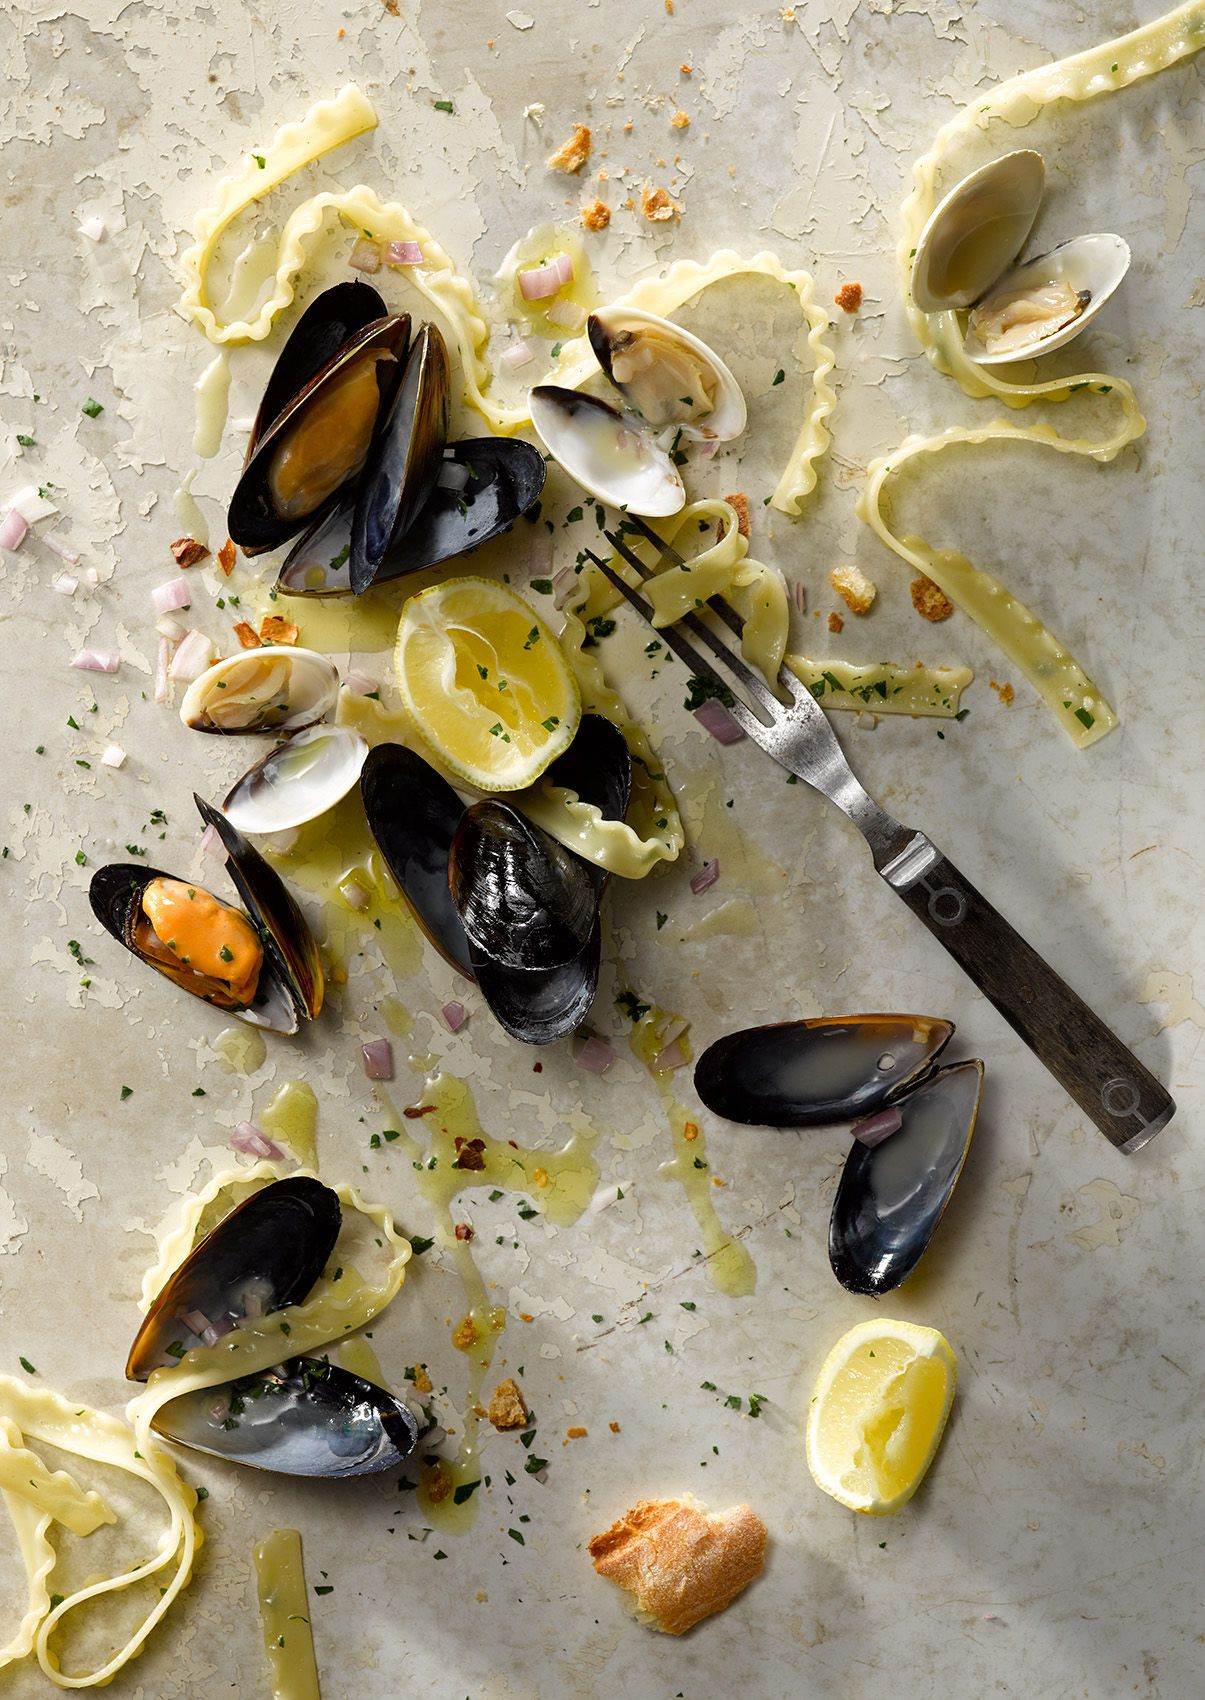 Pasta with Clams and Mussels